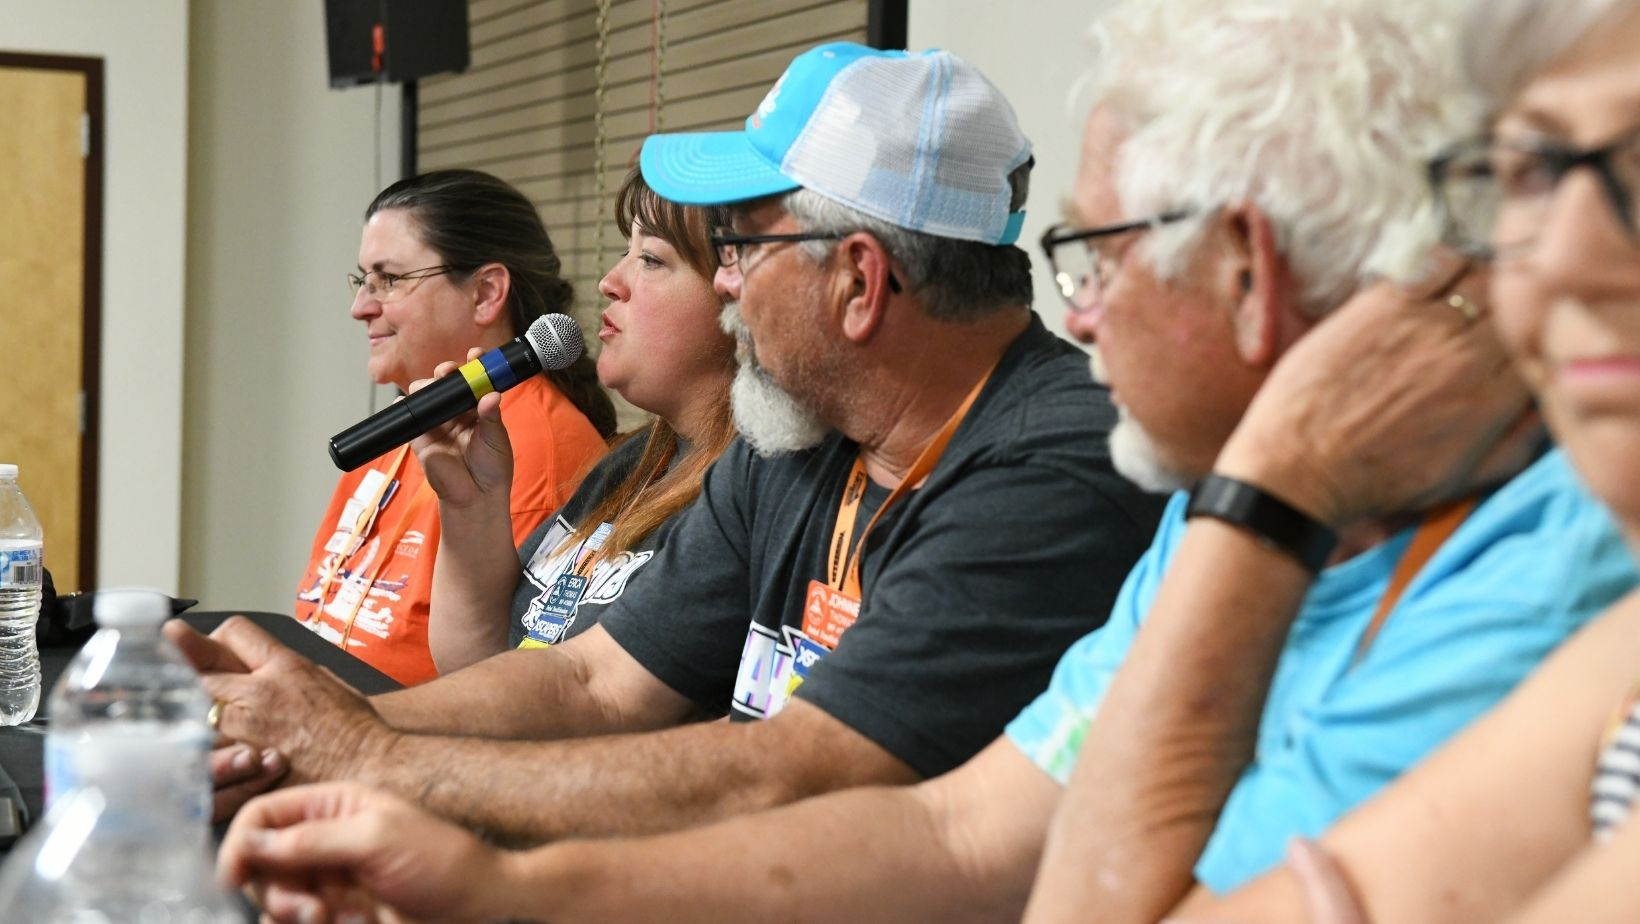 Members answer questions during an Escapade seminar on full-time RVing.